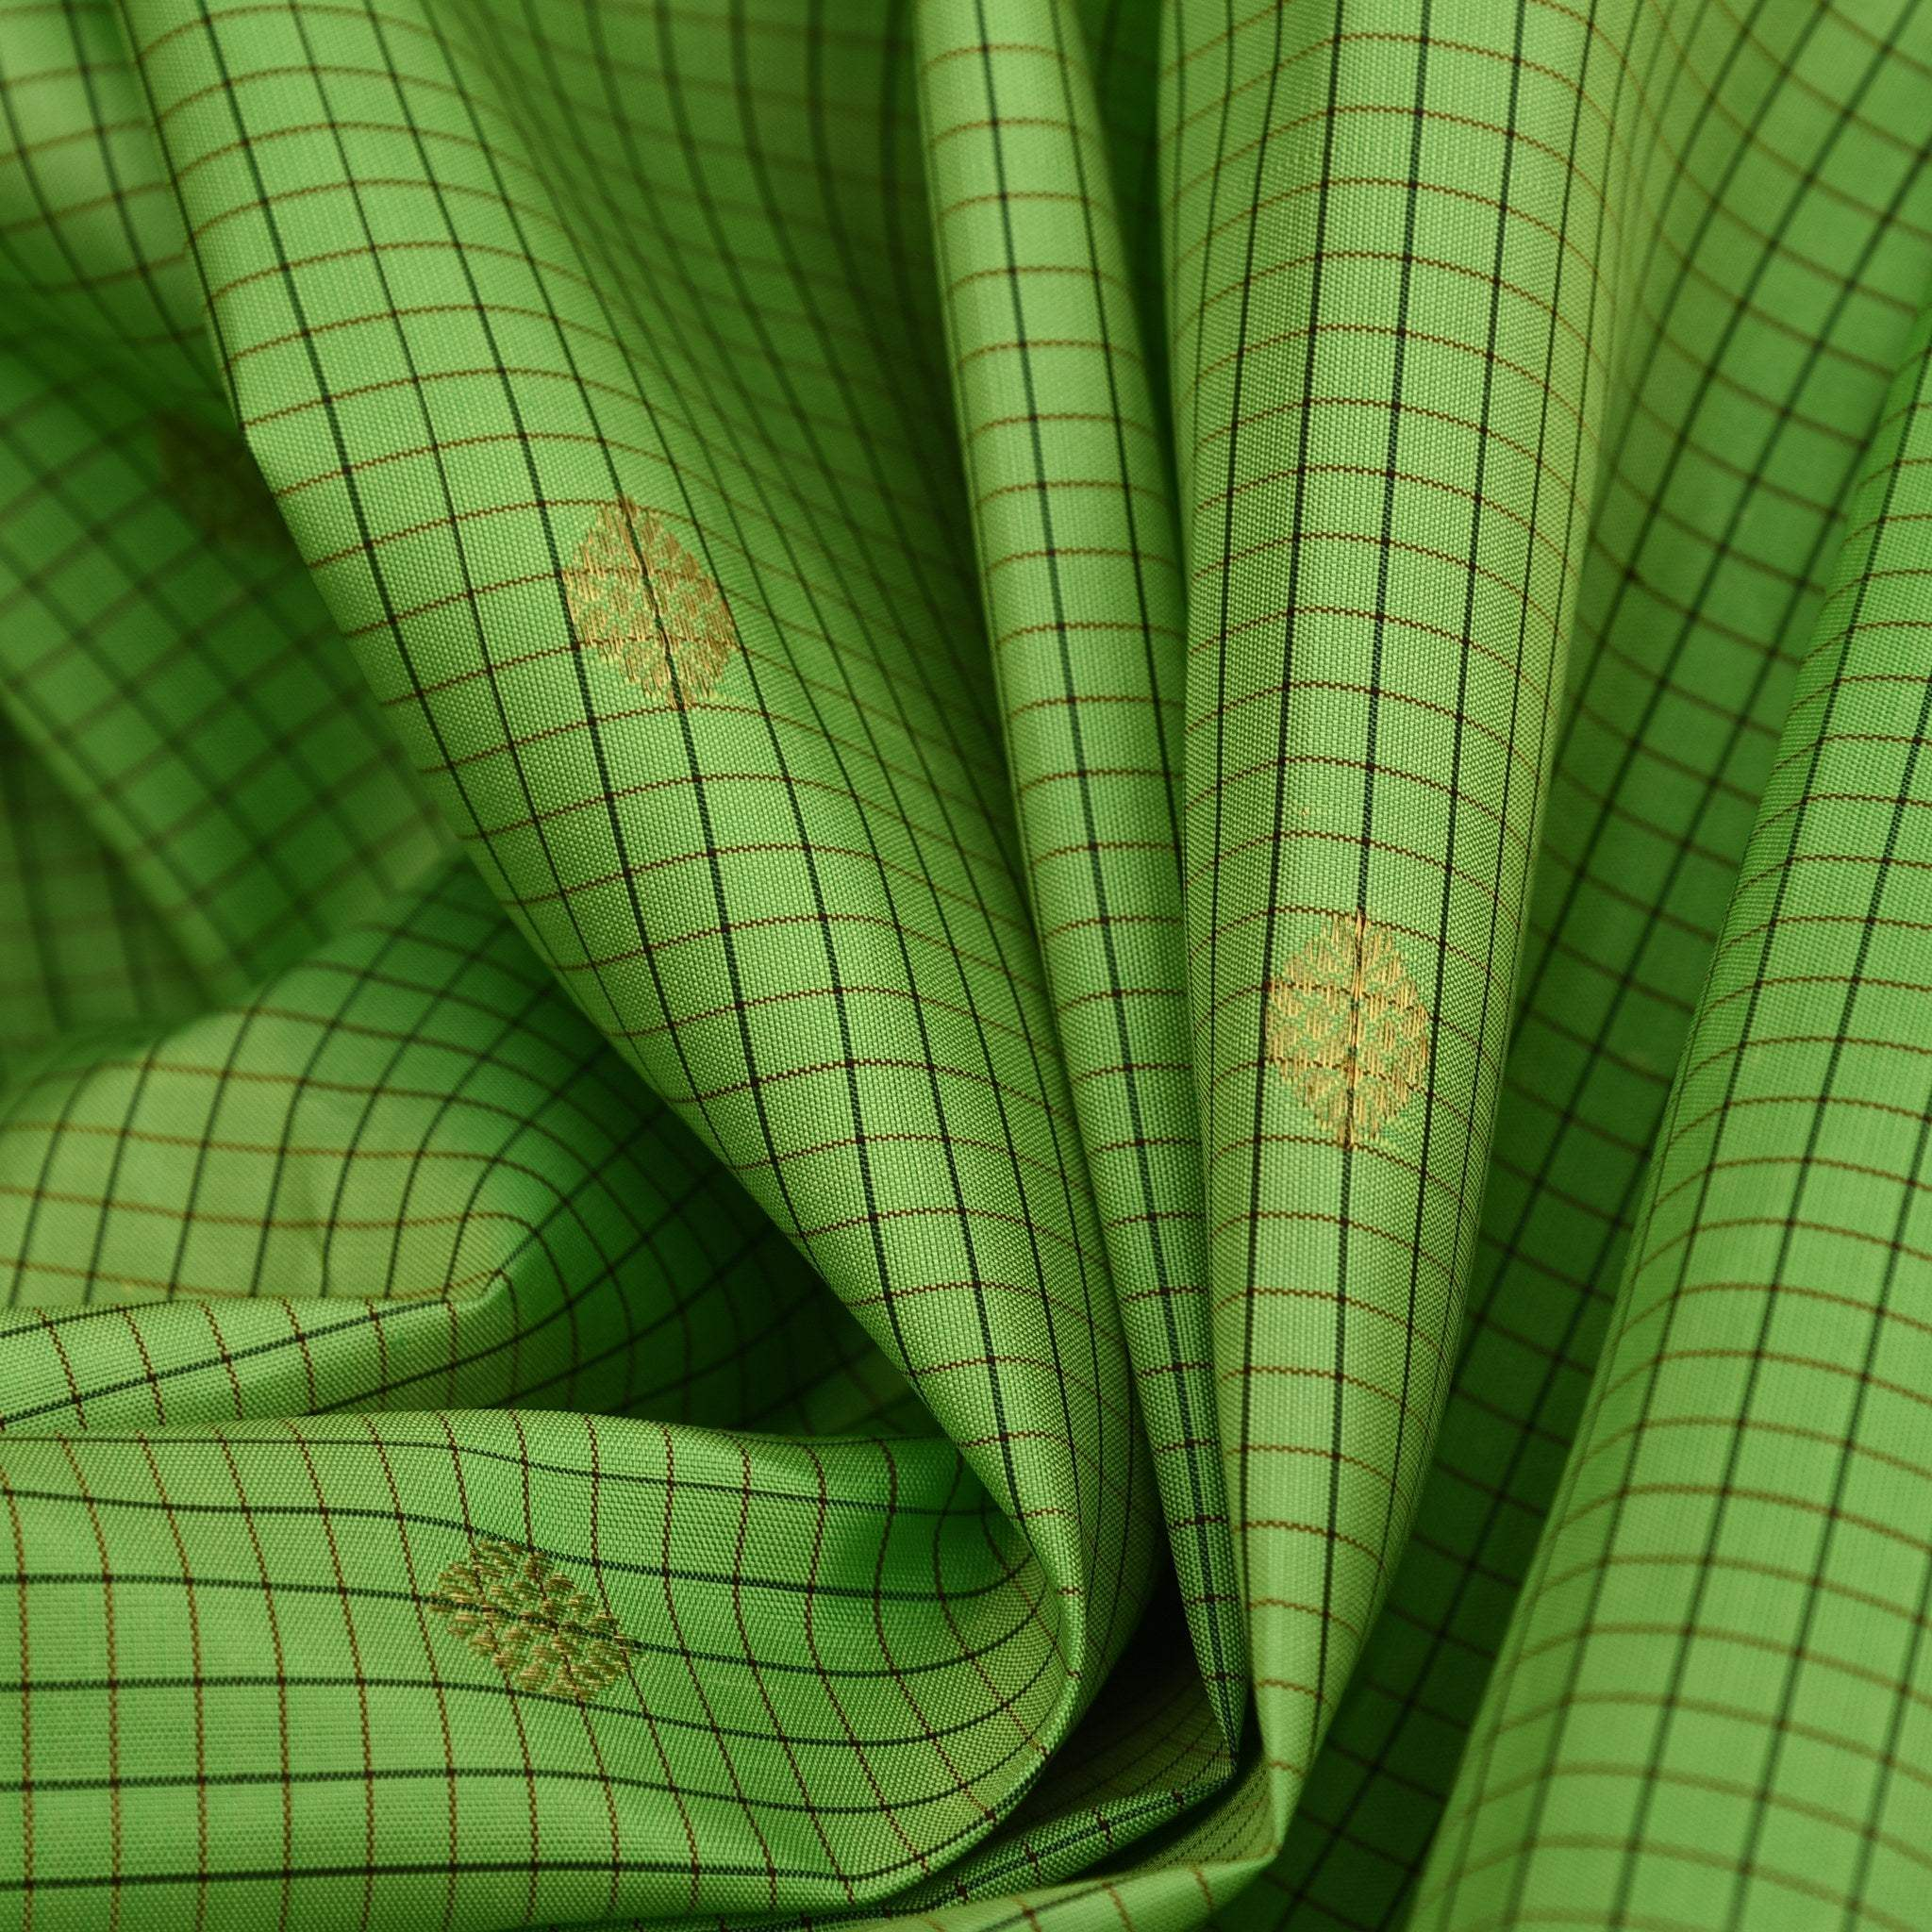 BB095895-Pear Green Handloom Kanjivaram Silk Checkered Saree